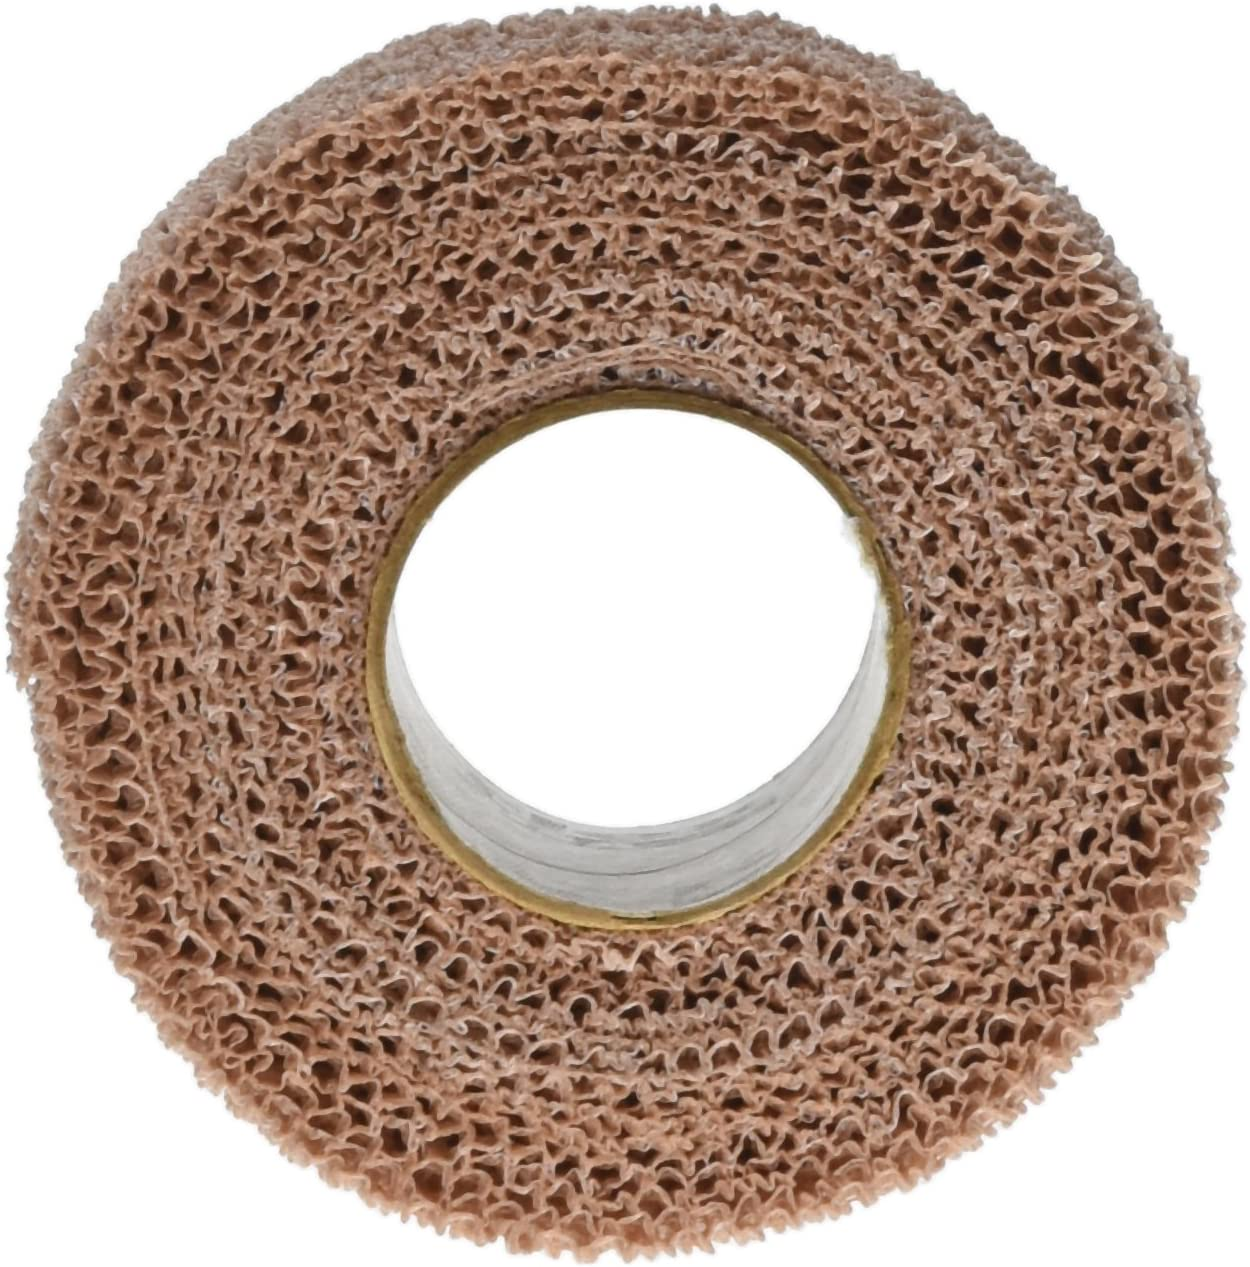 "Powerflex 2"" Stretch Athletic Tape - 6 Rolls, Tan"